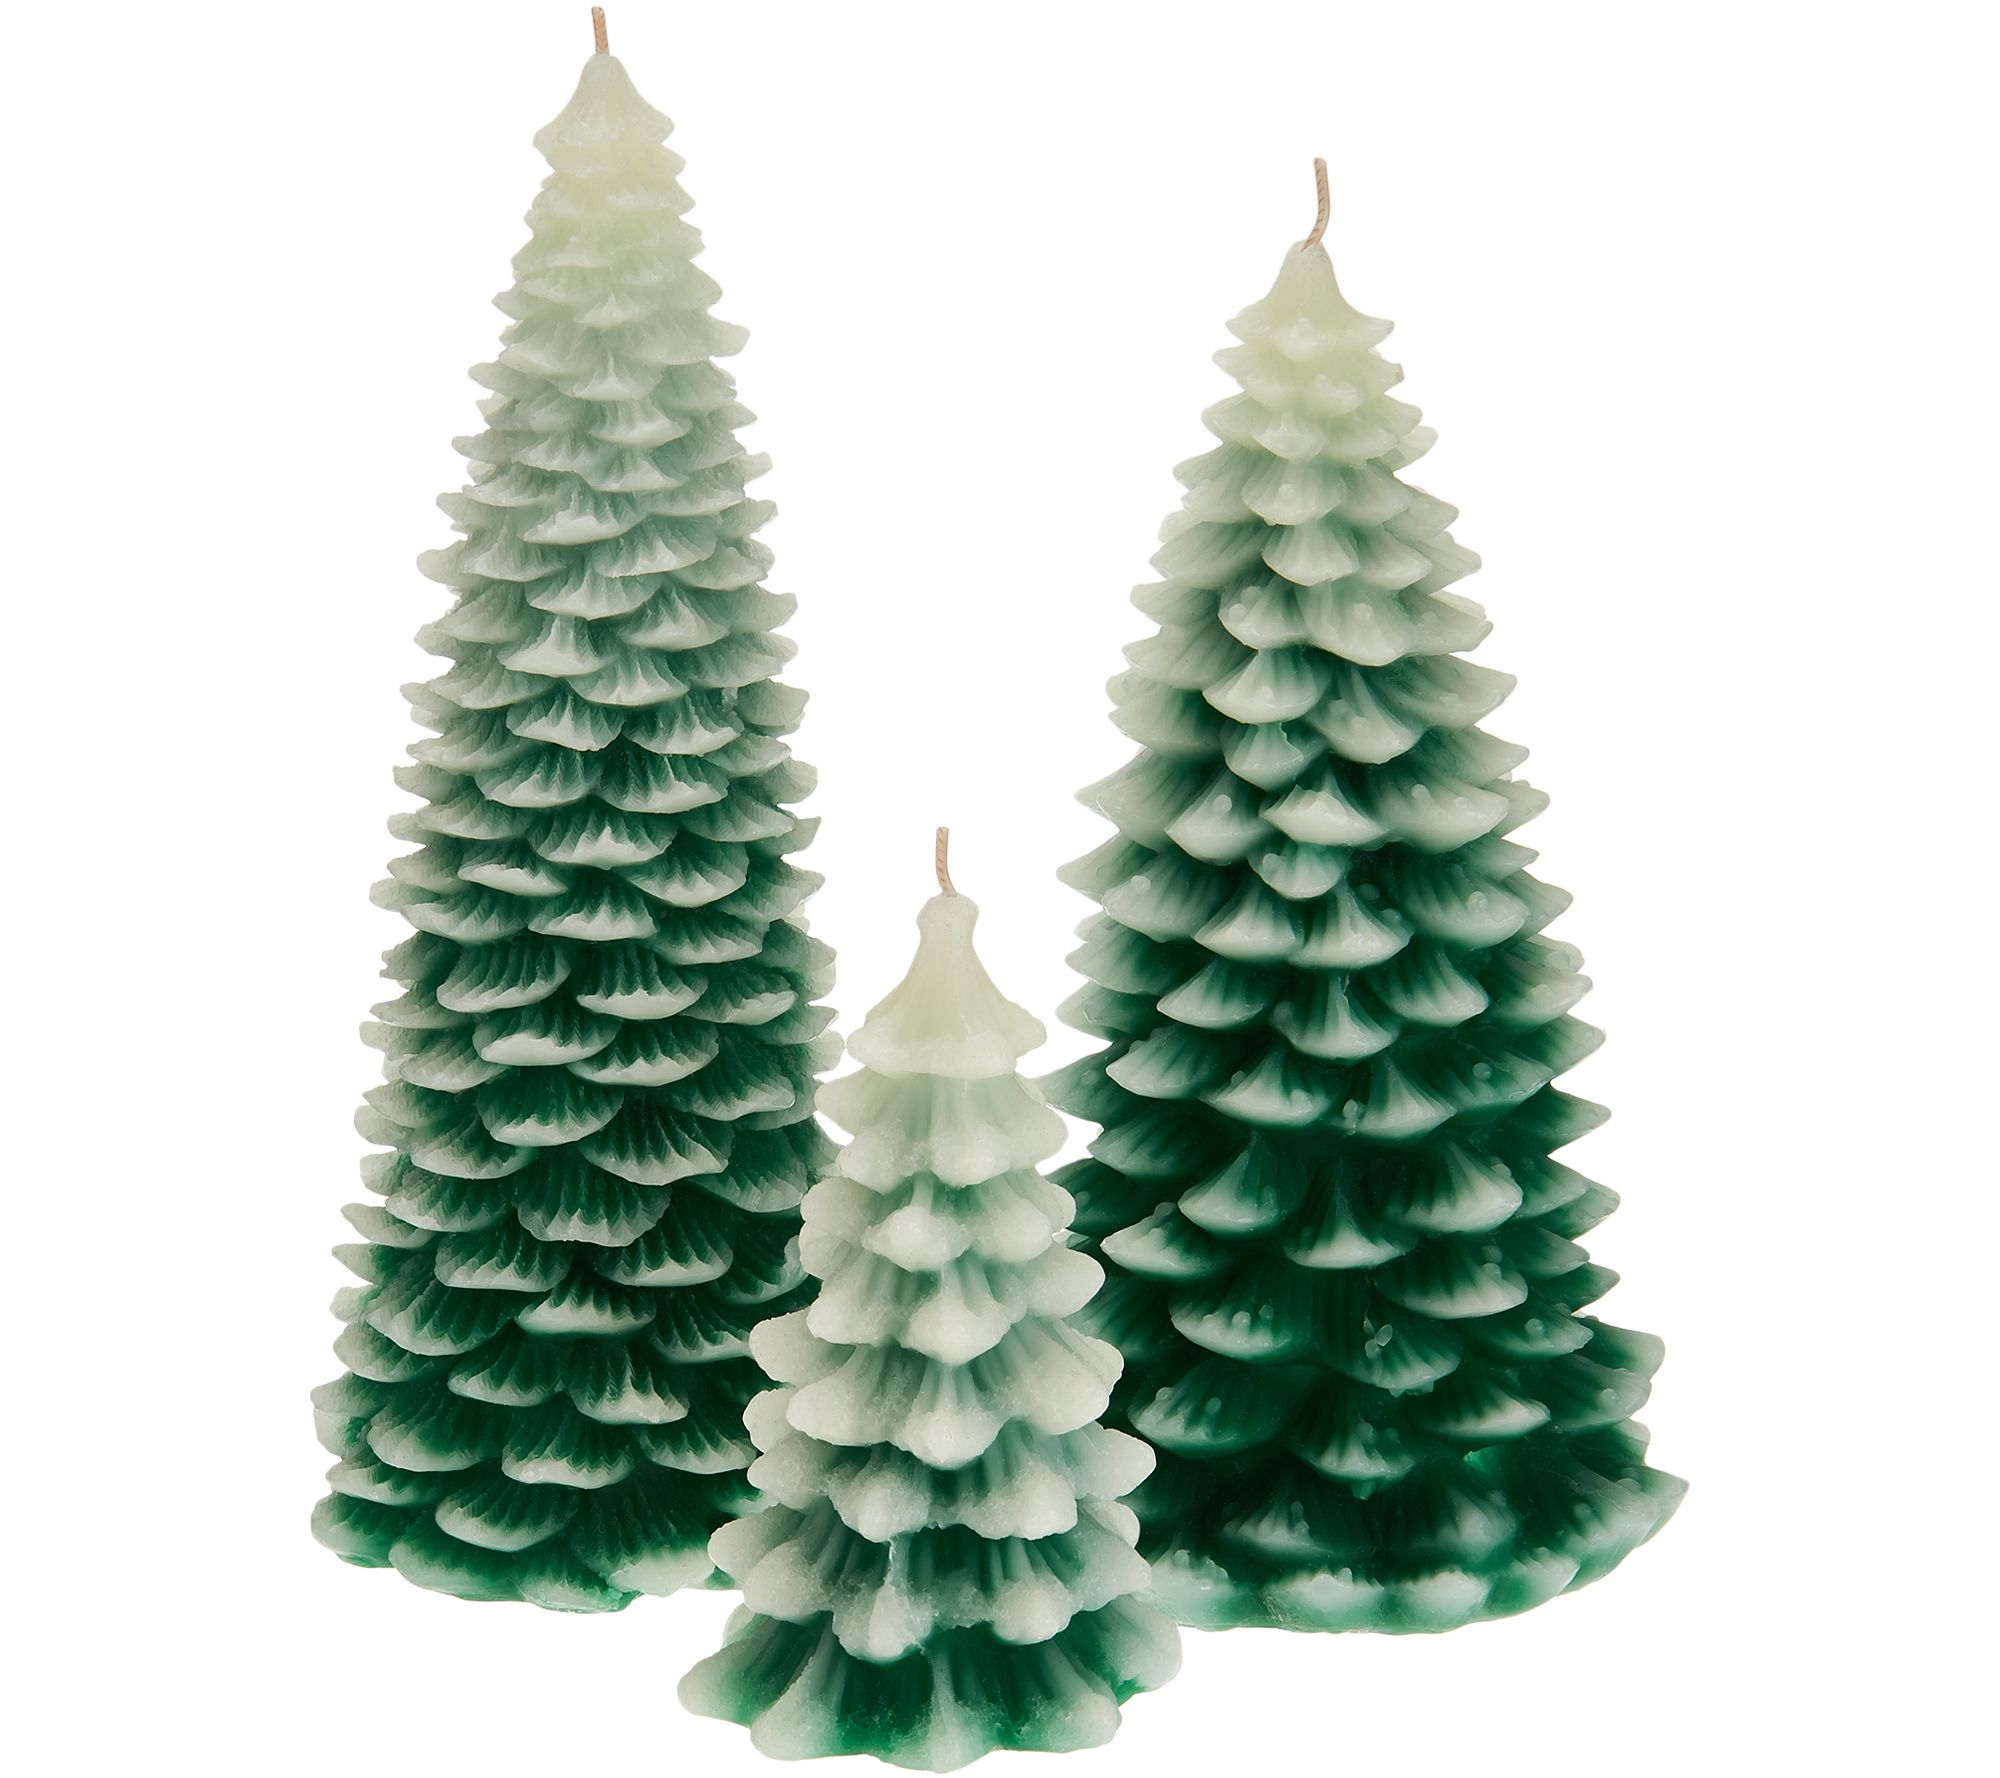 Pine Cone Candles Candles Scents Candles Home Fragrances More Qvccom